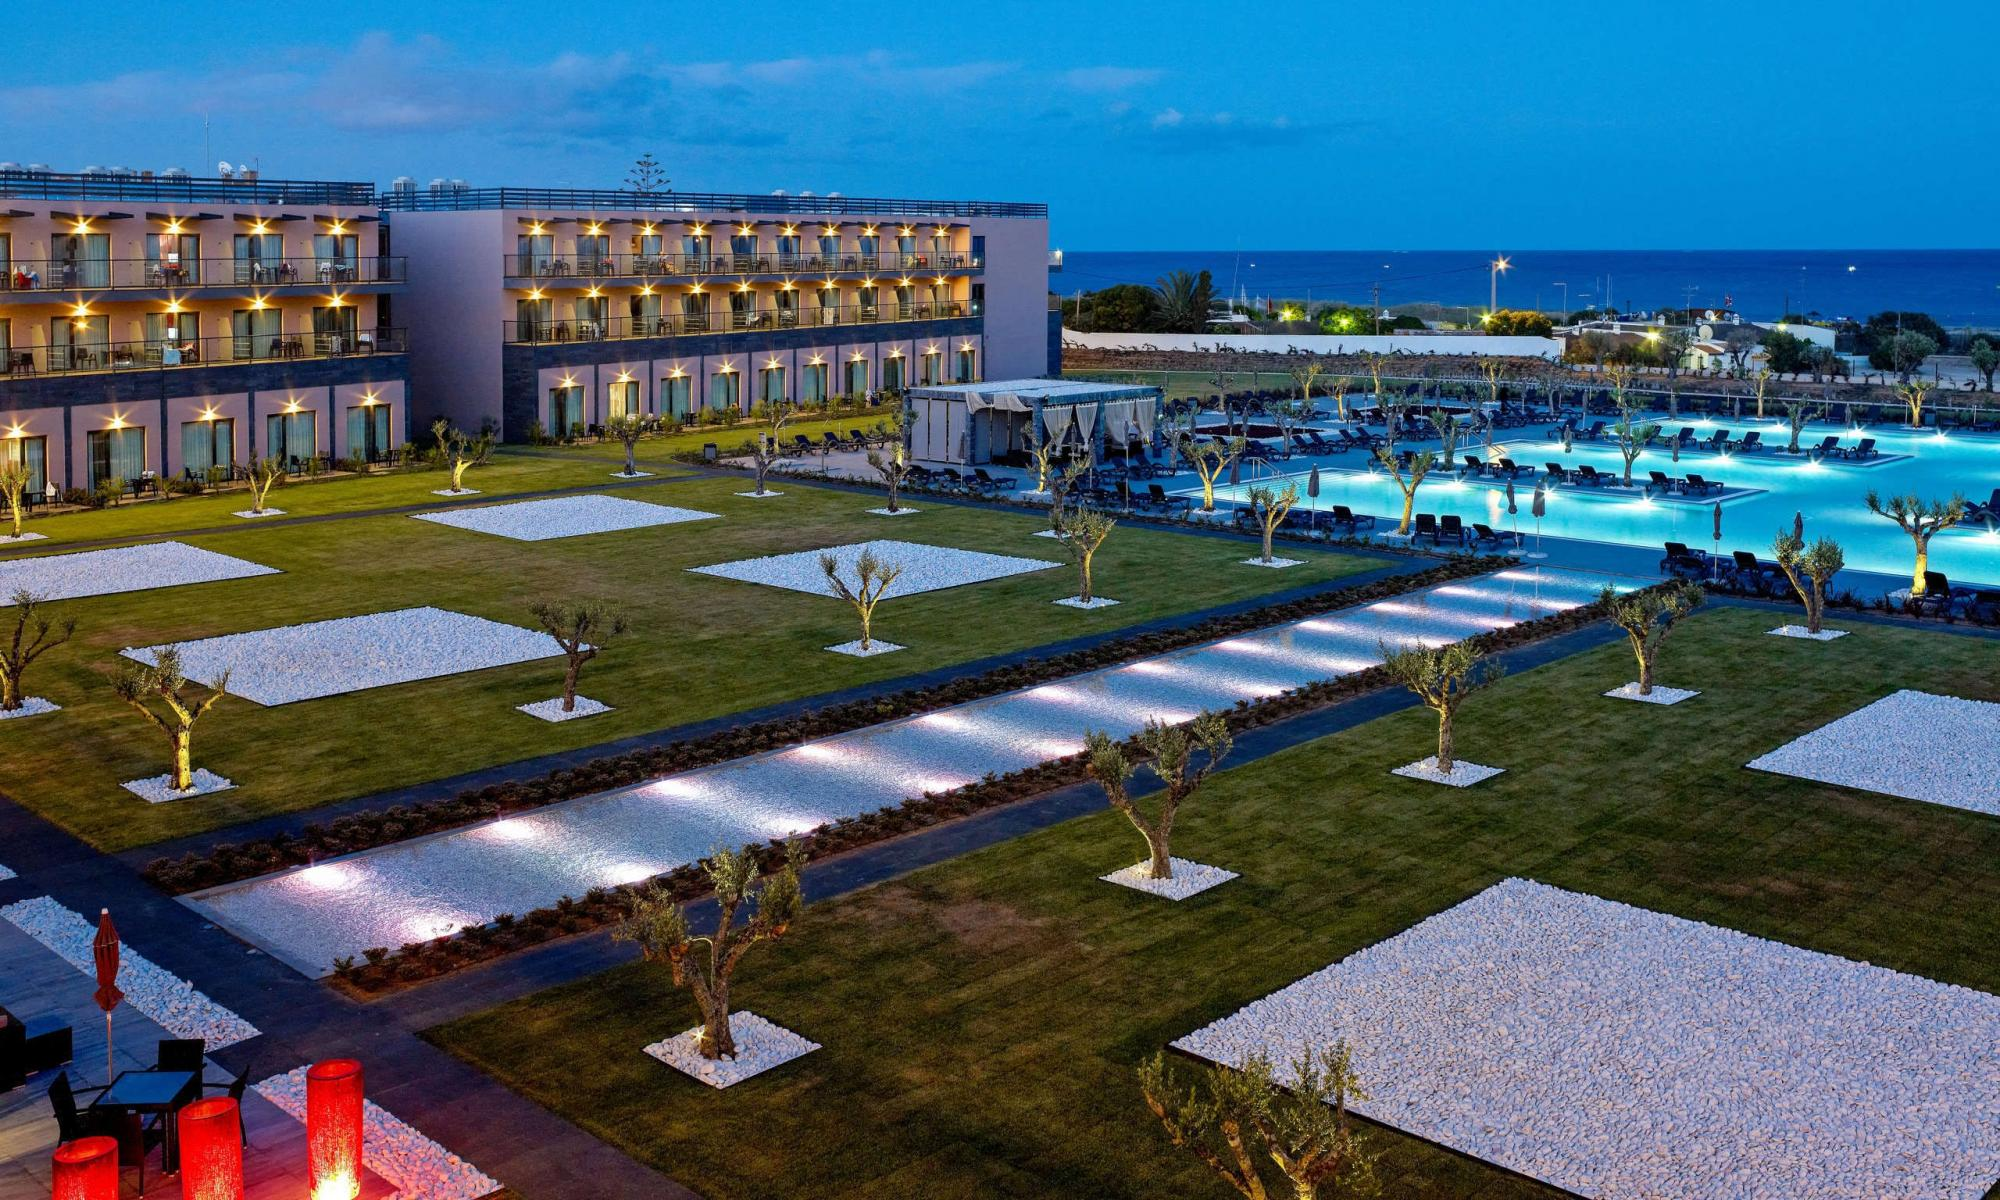 Hotel Tivoli Carvoeiro Algarve Booking Vila Gale Lagos Hotel Book A Golf Trip In Algarve